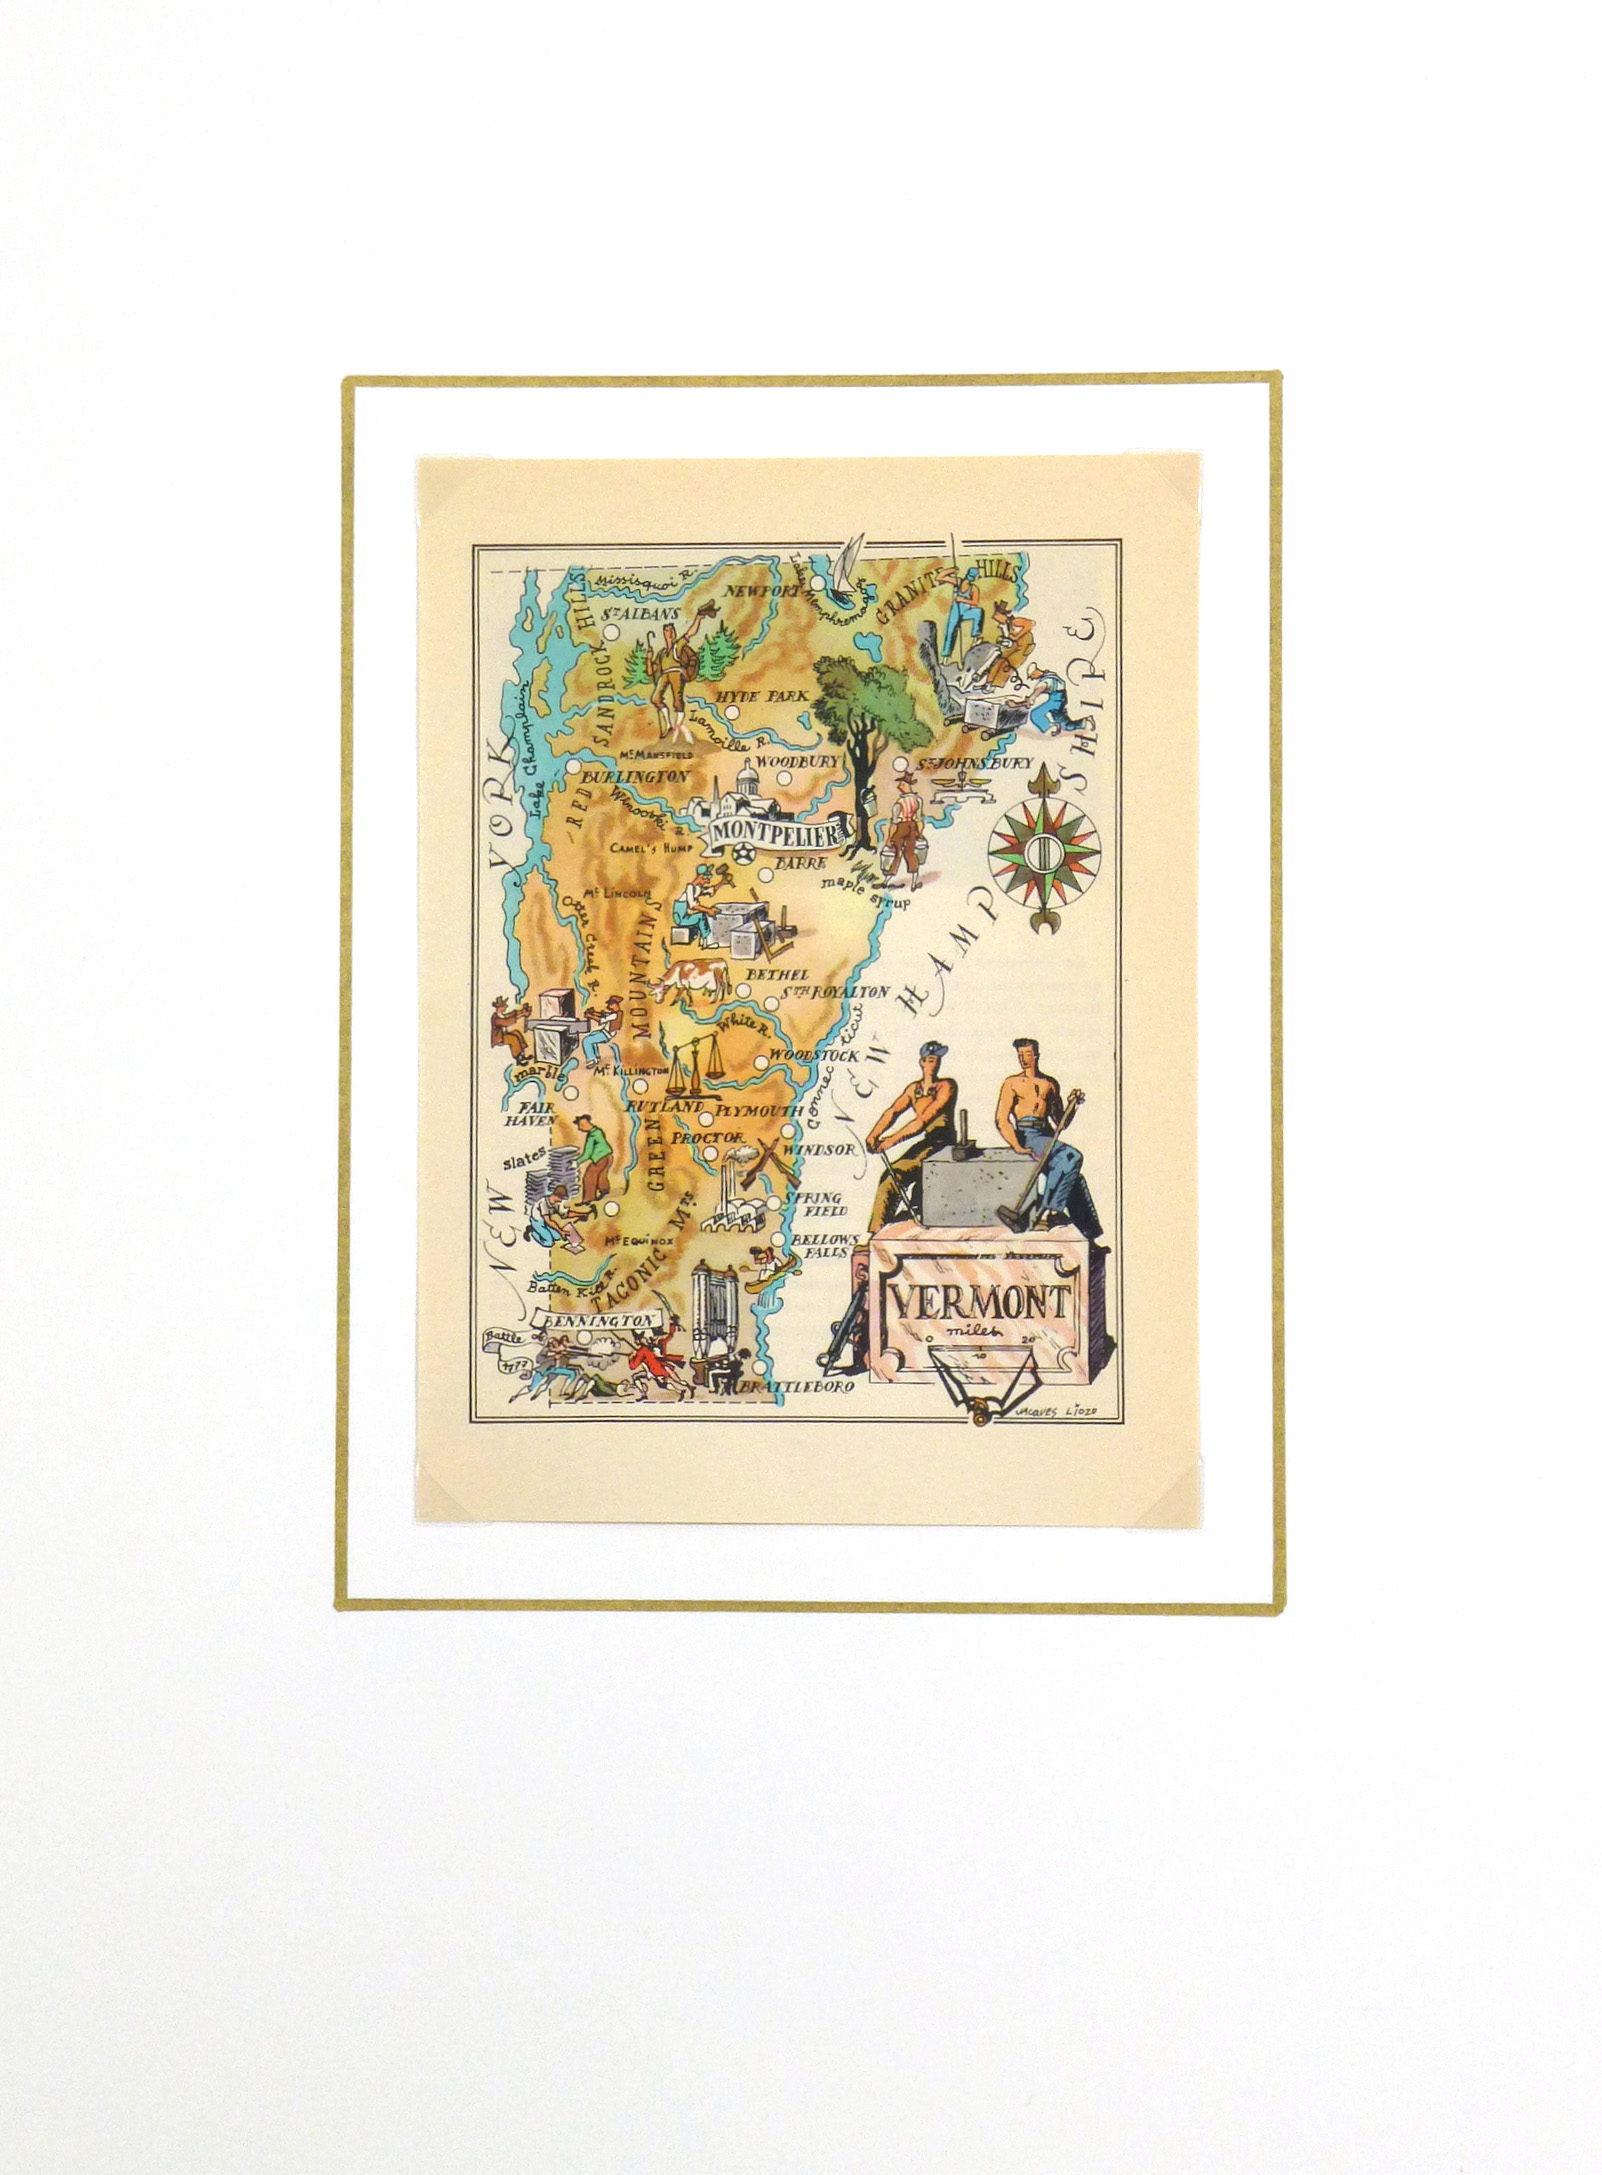 Vermont Pictorial Map, 1946-matted-6232K